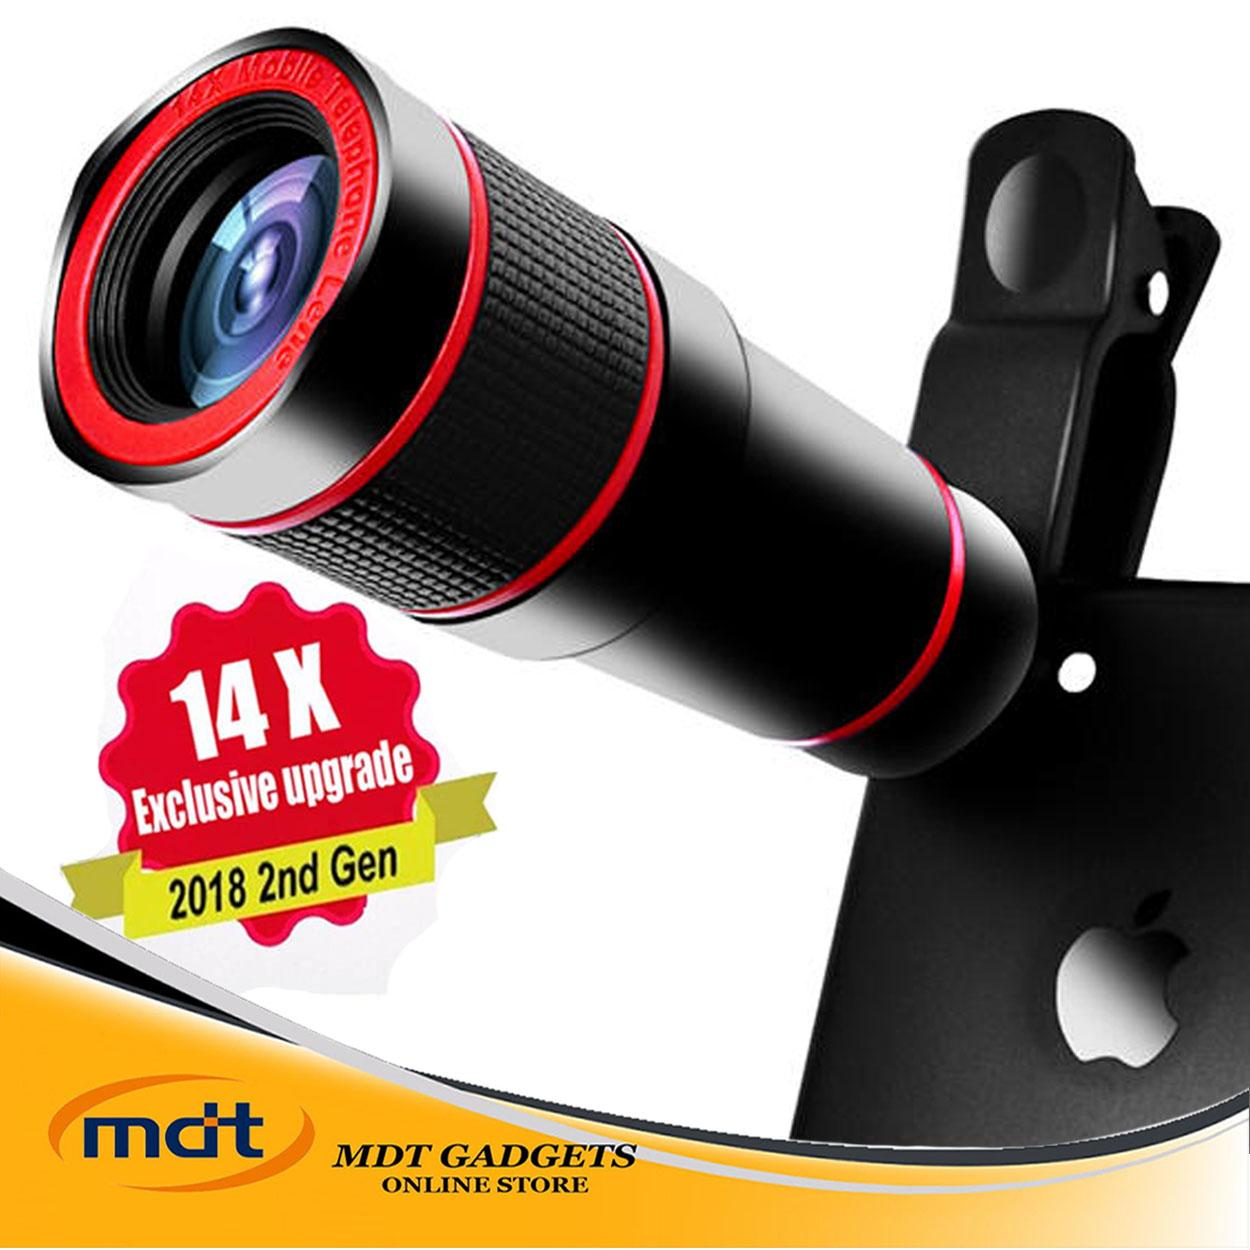 2018 NEW ARRIVAL 14X ZOOM 4K HD TELEPHOTO PHONE LENS OPTICAL TELESCOPE CAMERA FOR SMARTPHONE IPHONE SAMSUNG HUAWEI XIAOMI MOBILE